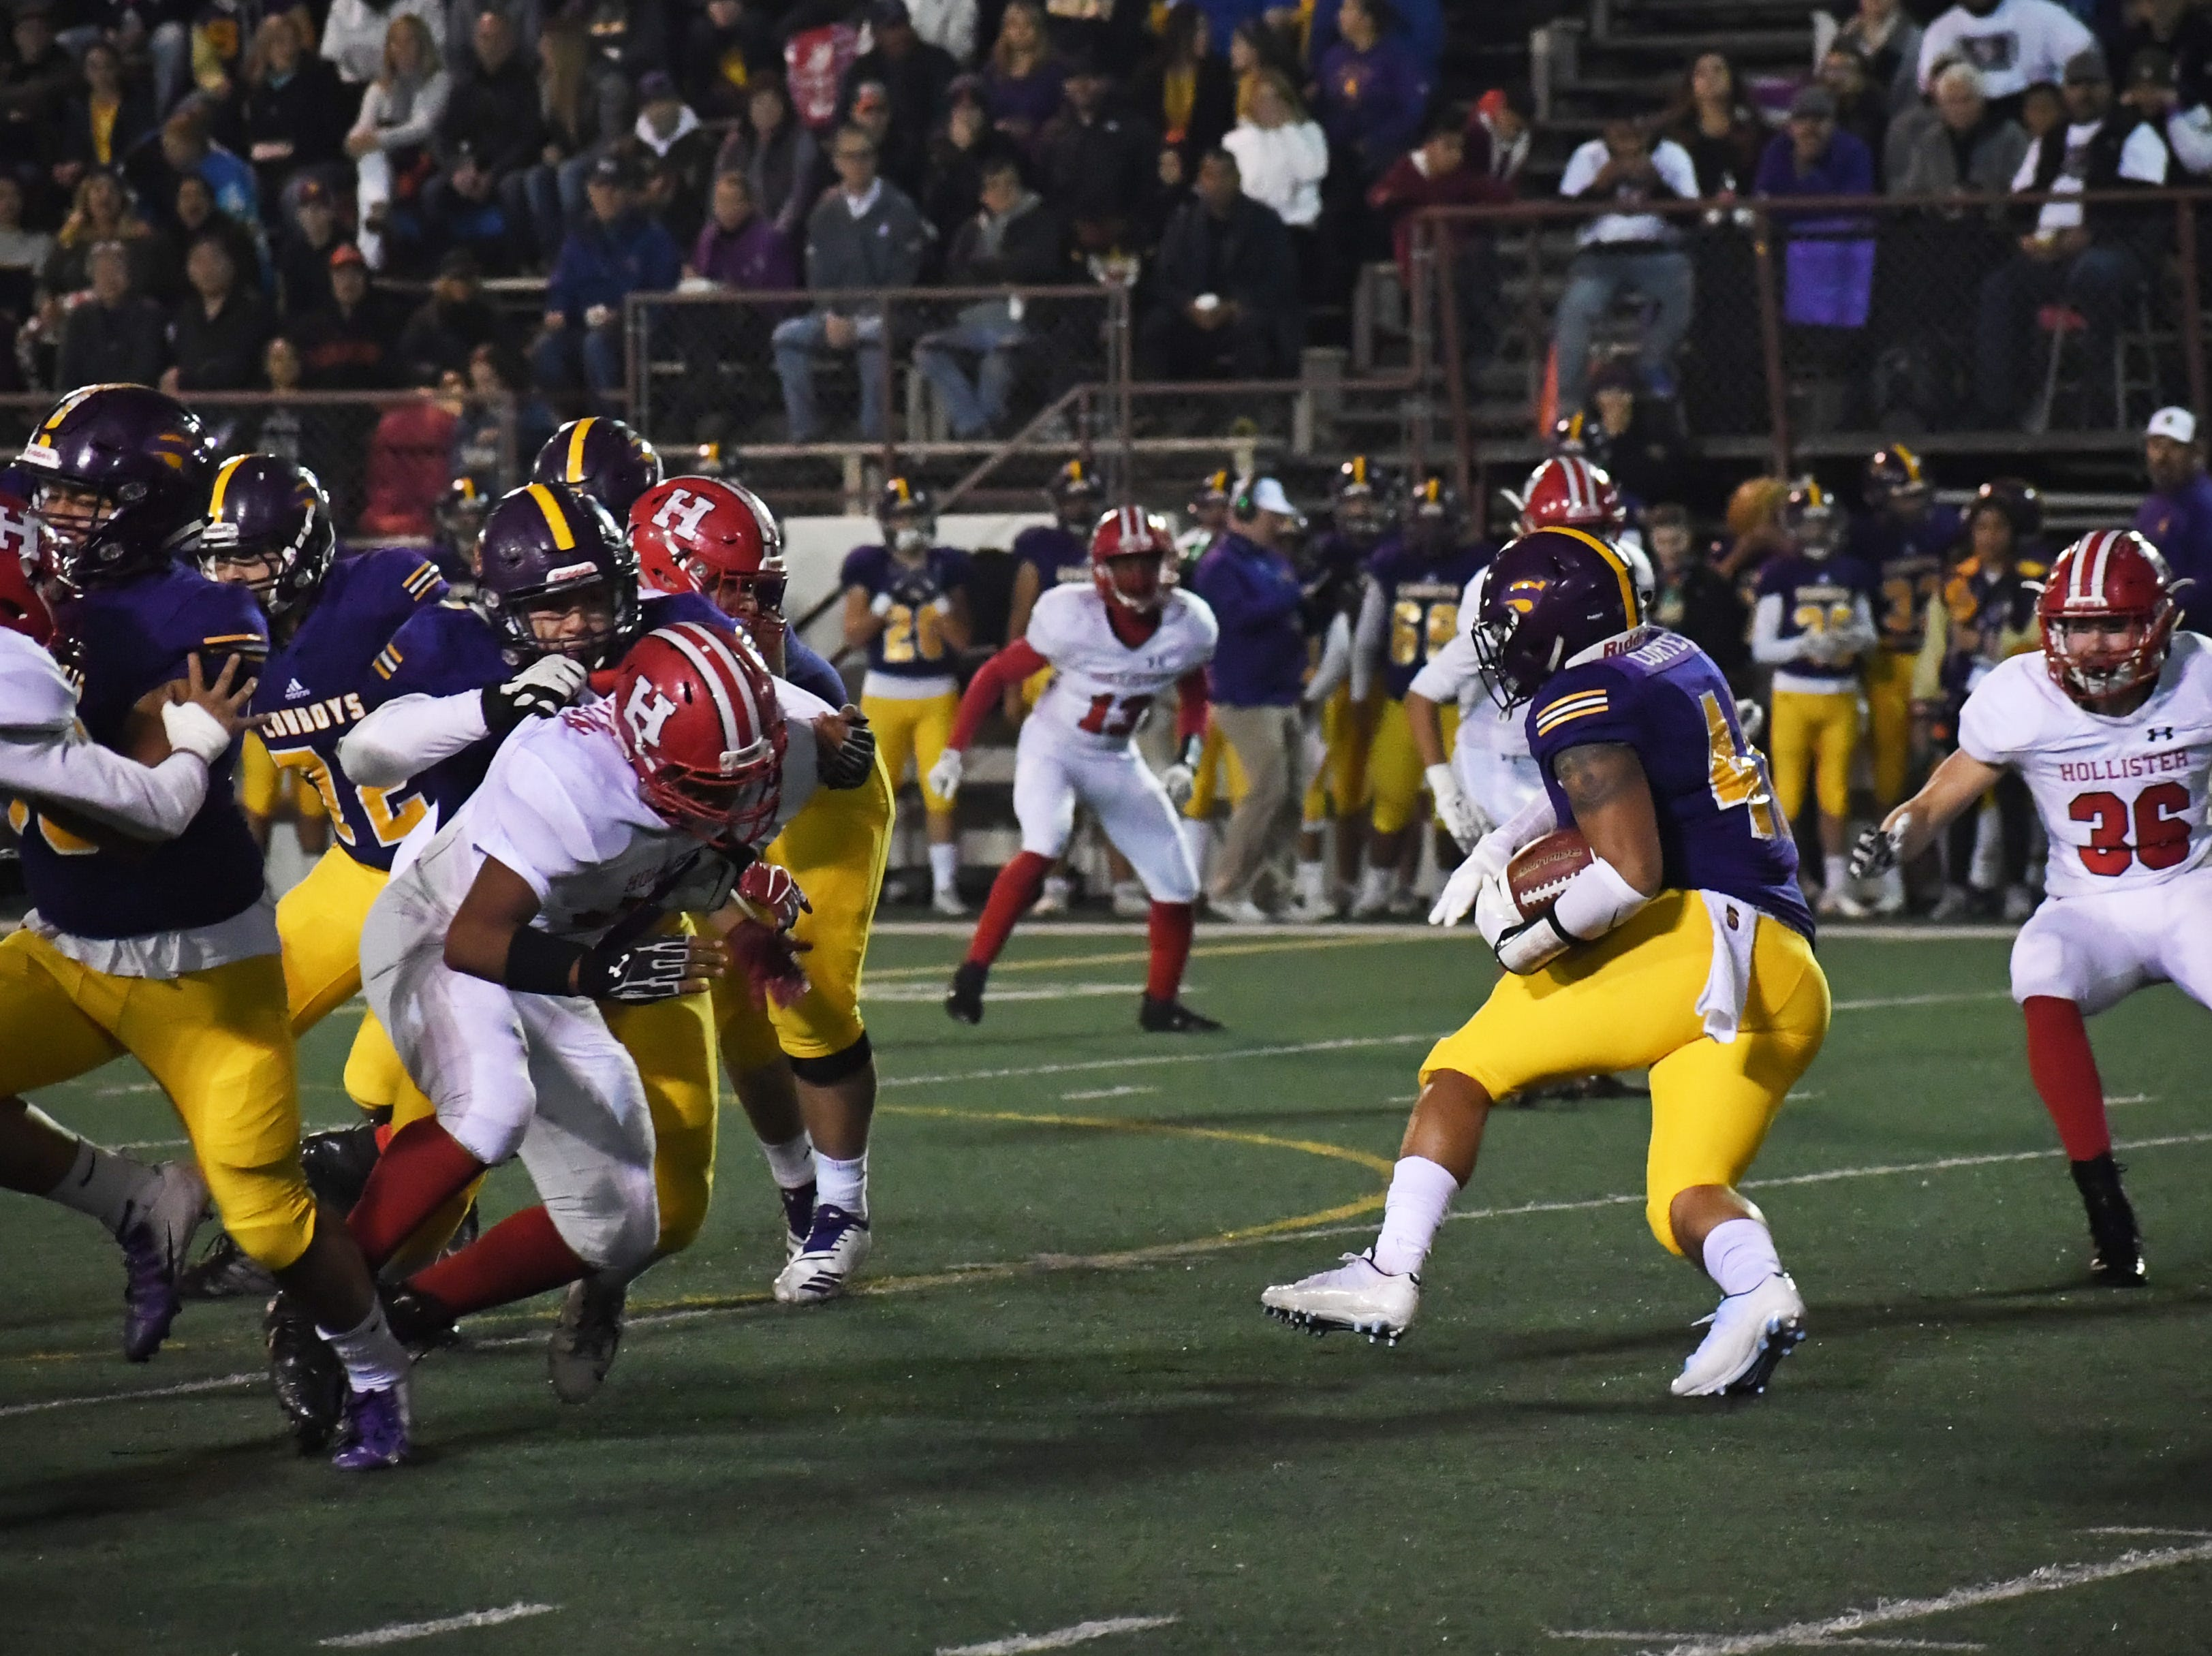 Running back Mike Cortez (41) cuts right to avoid a tackler.